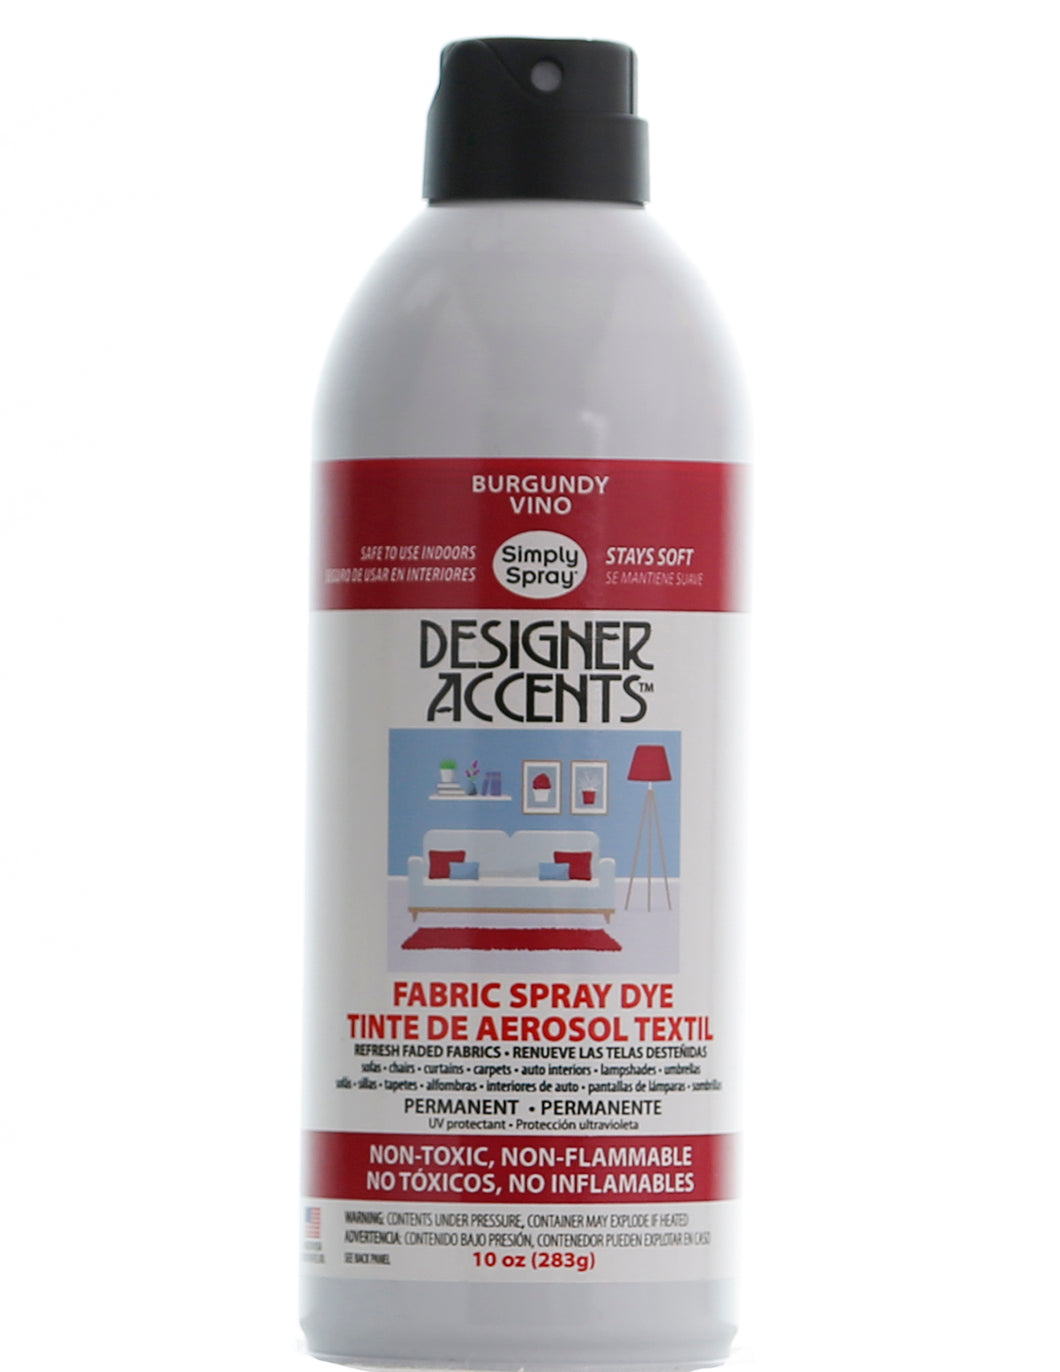 A single can of simply spray burgundy fabric paint spray dye